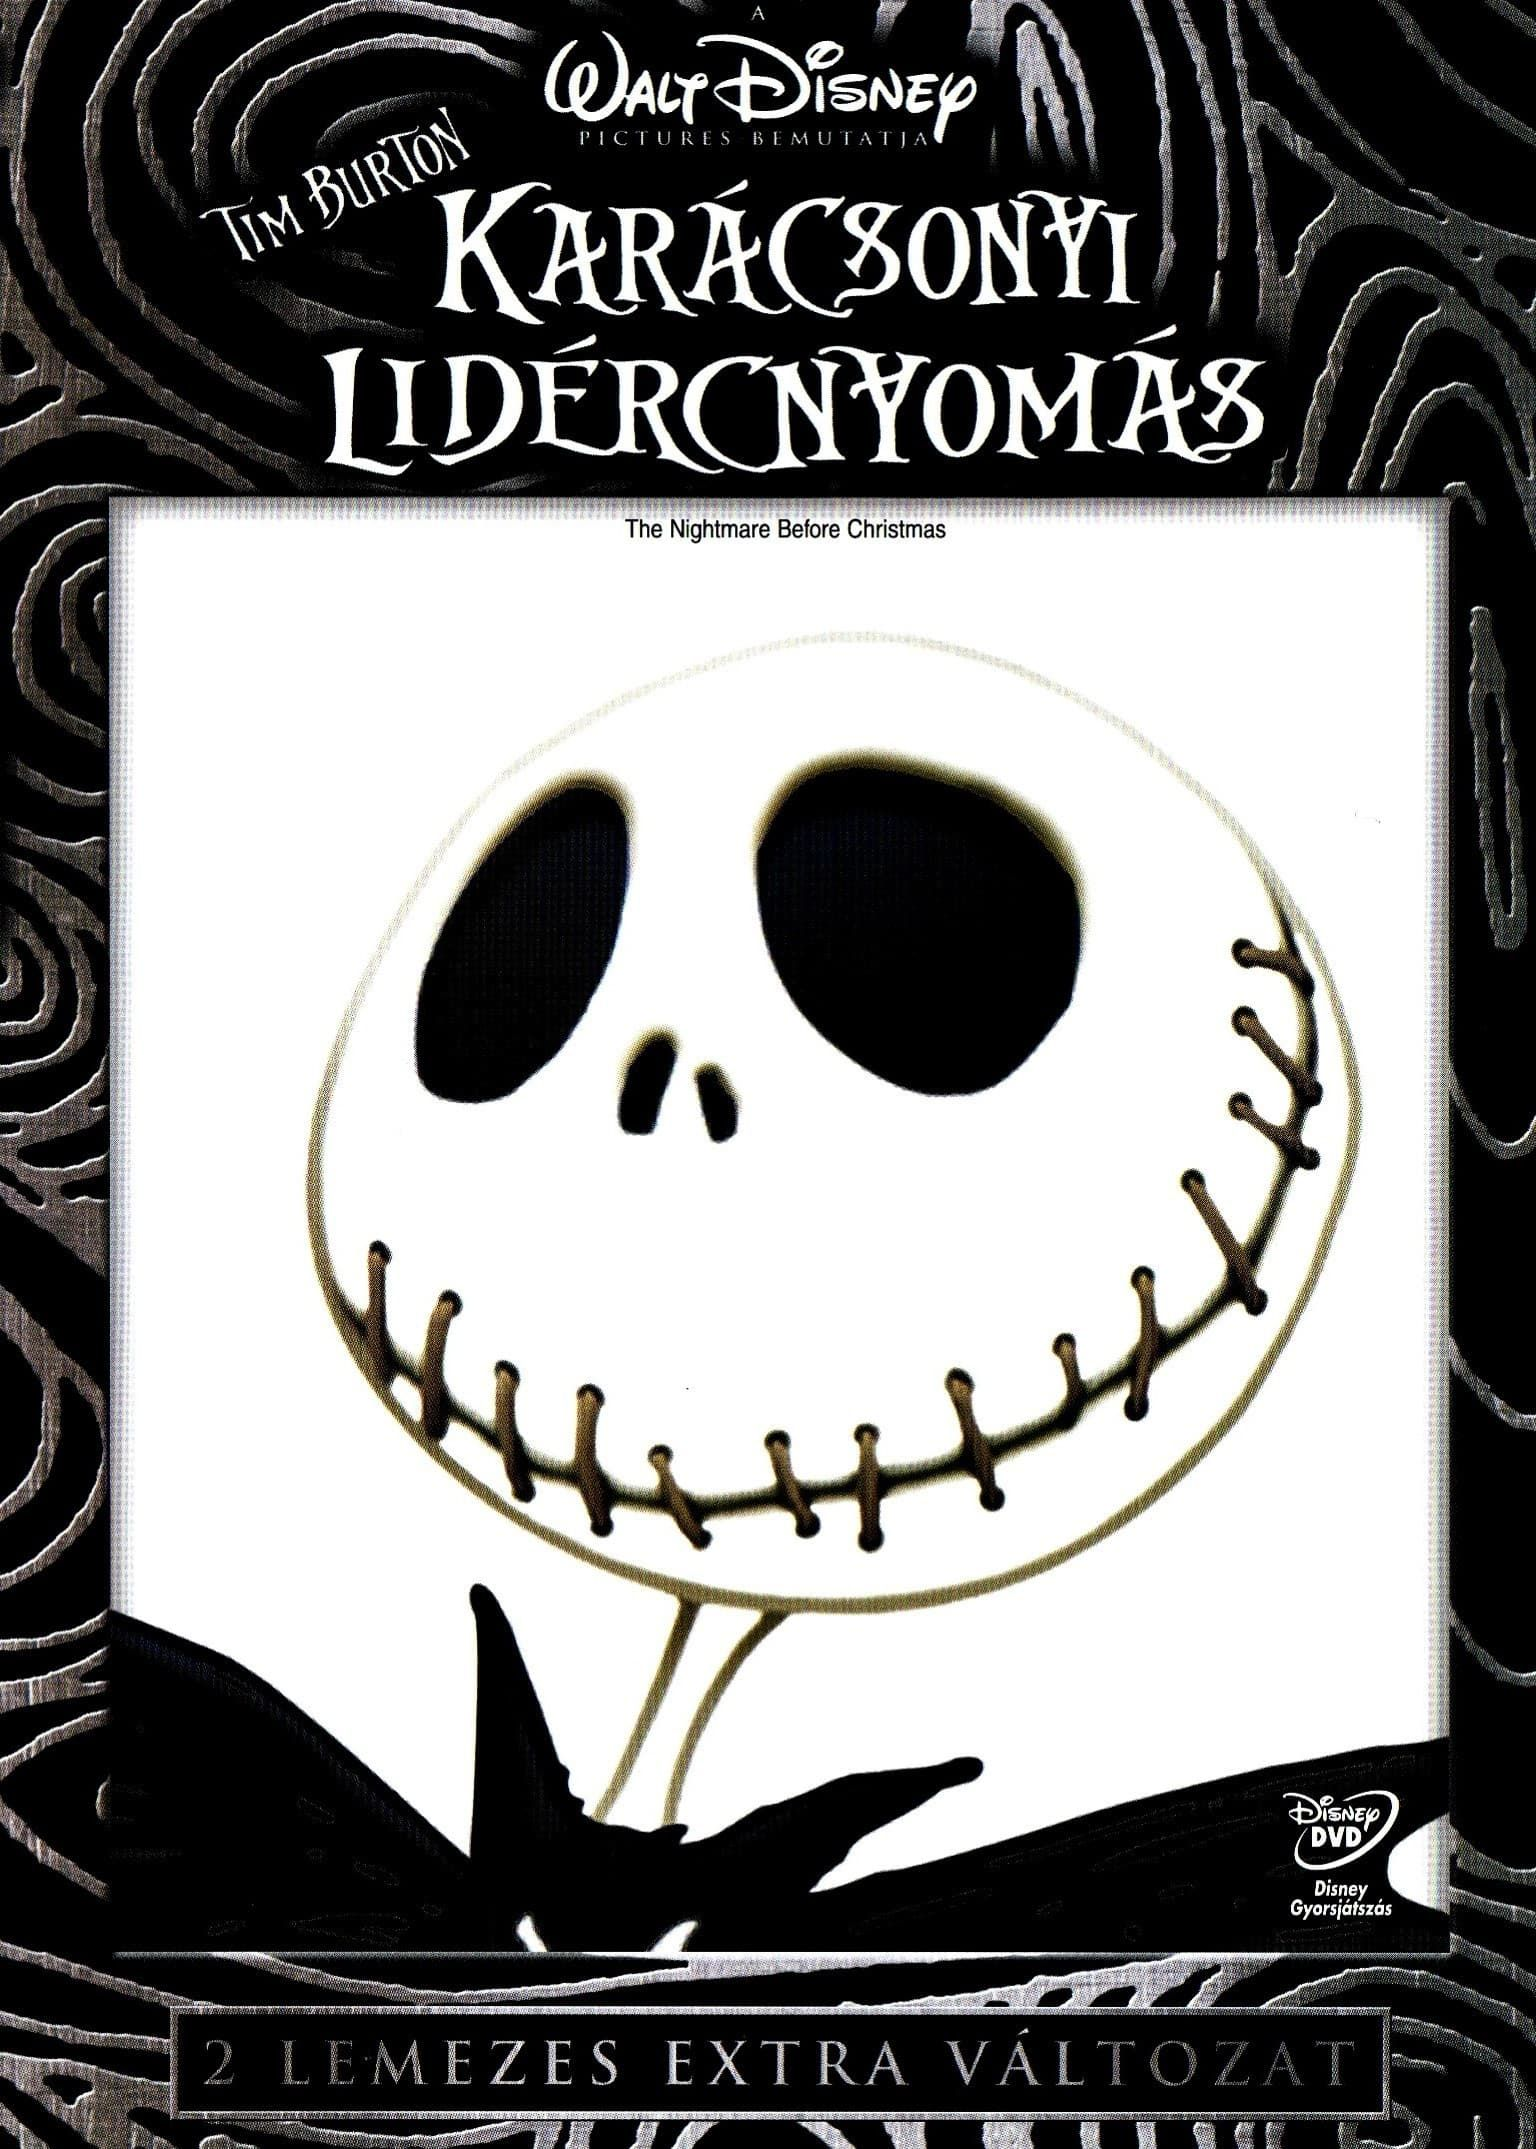 The Nightmare Before Christmas (1993) free Téléchargement complets ...